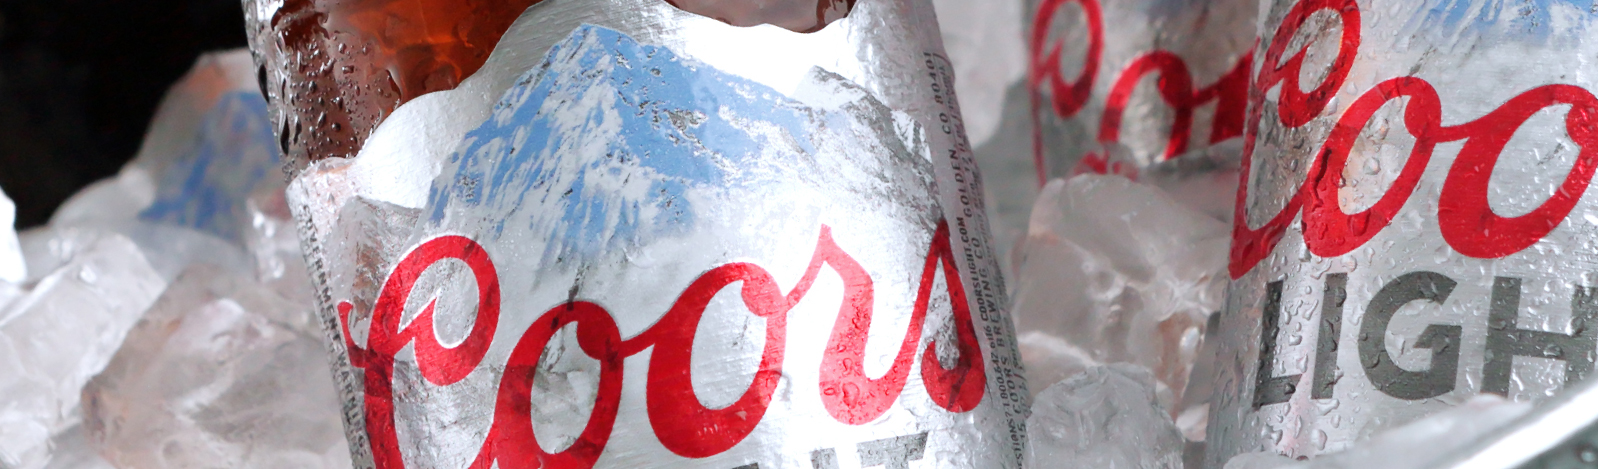 Beer: Coors Light Cut and stack beer labels by Inland